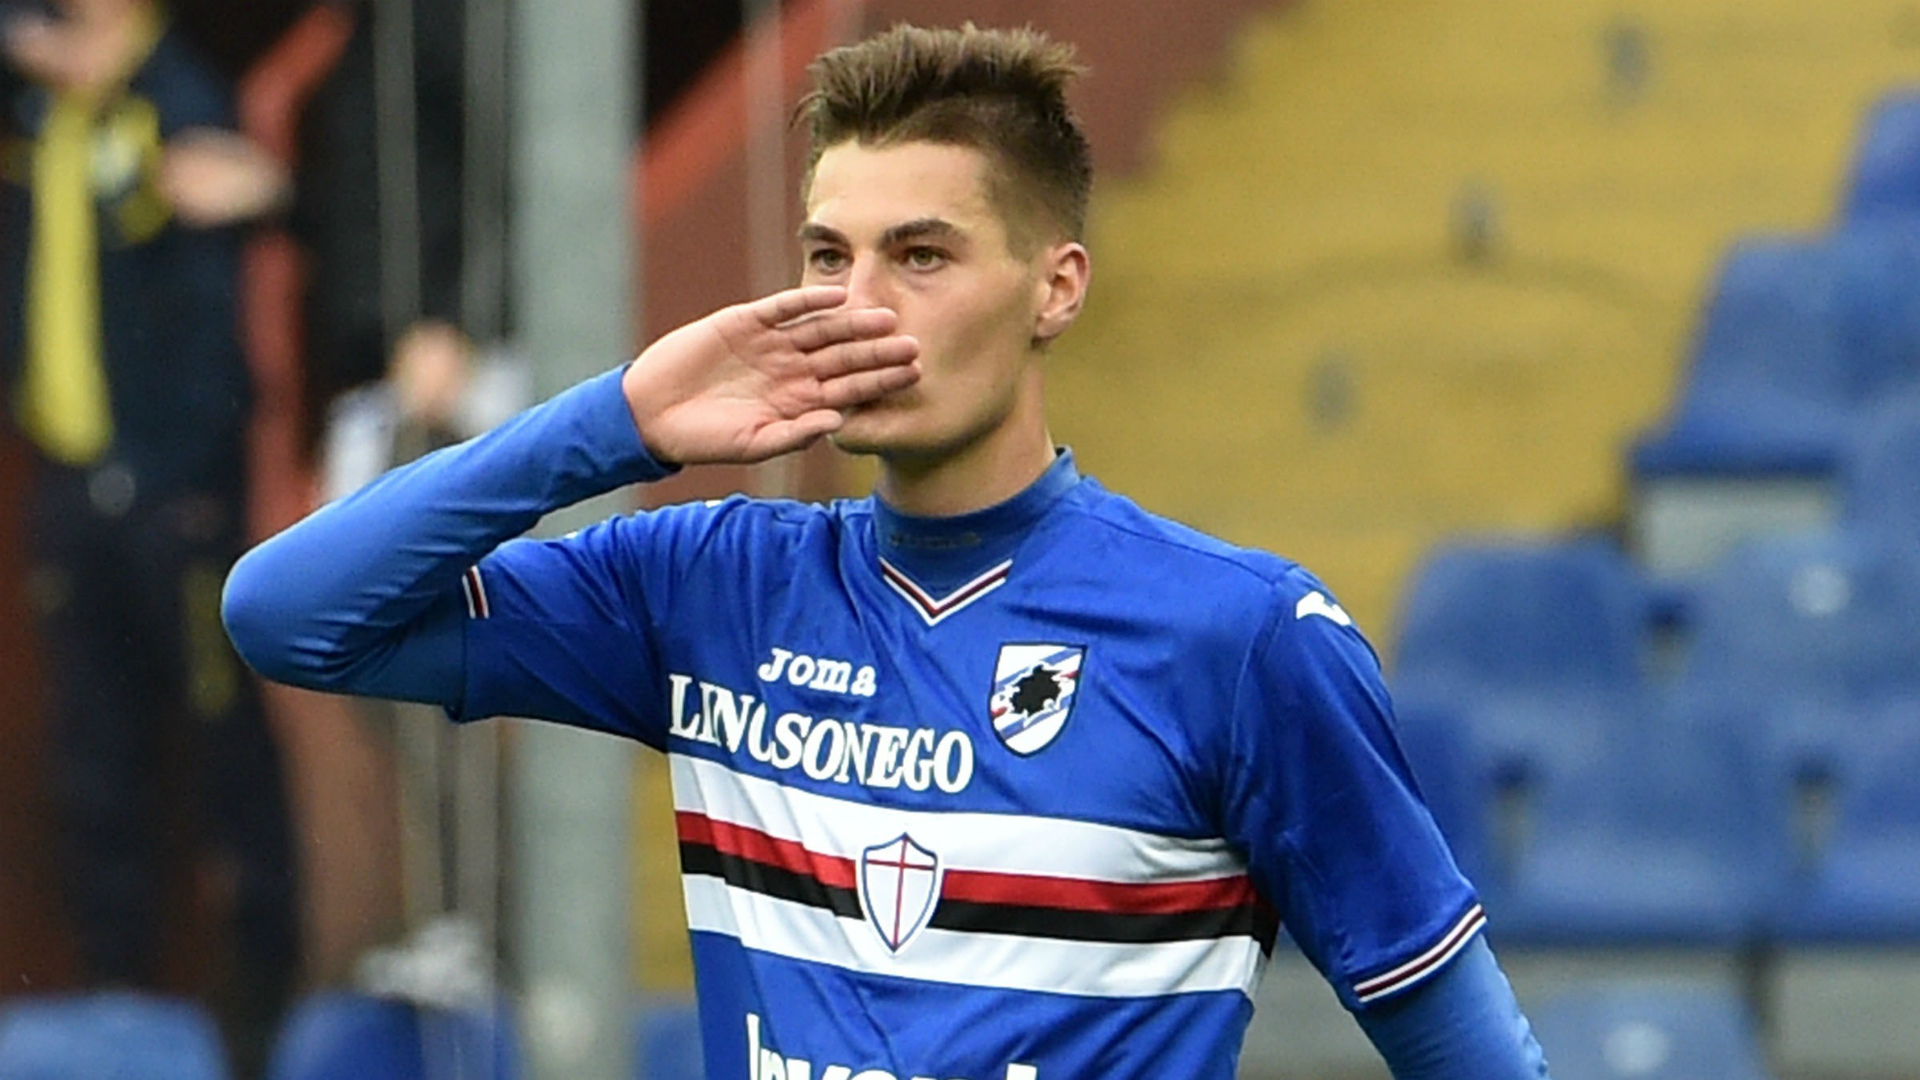 Sampdoria President: 'Patrik Schick is going to Juventus'